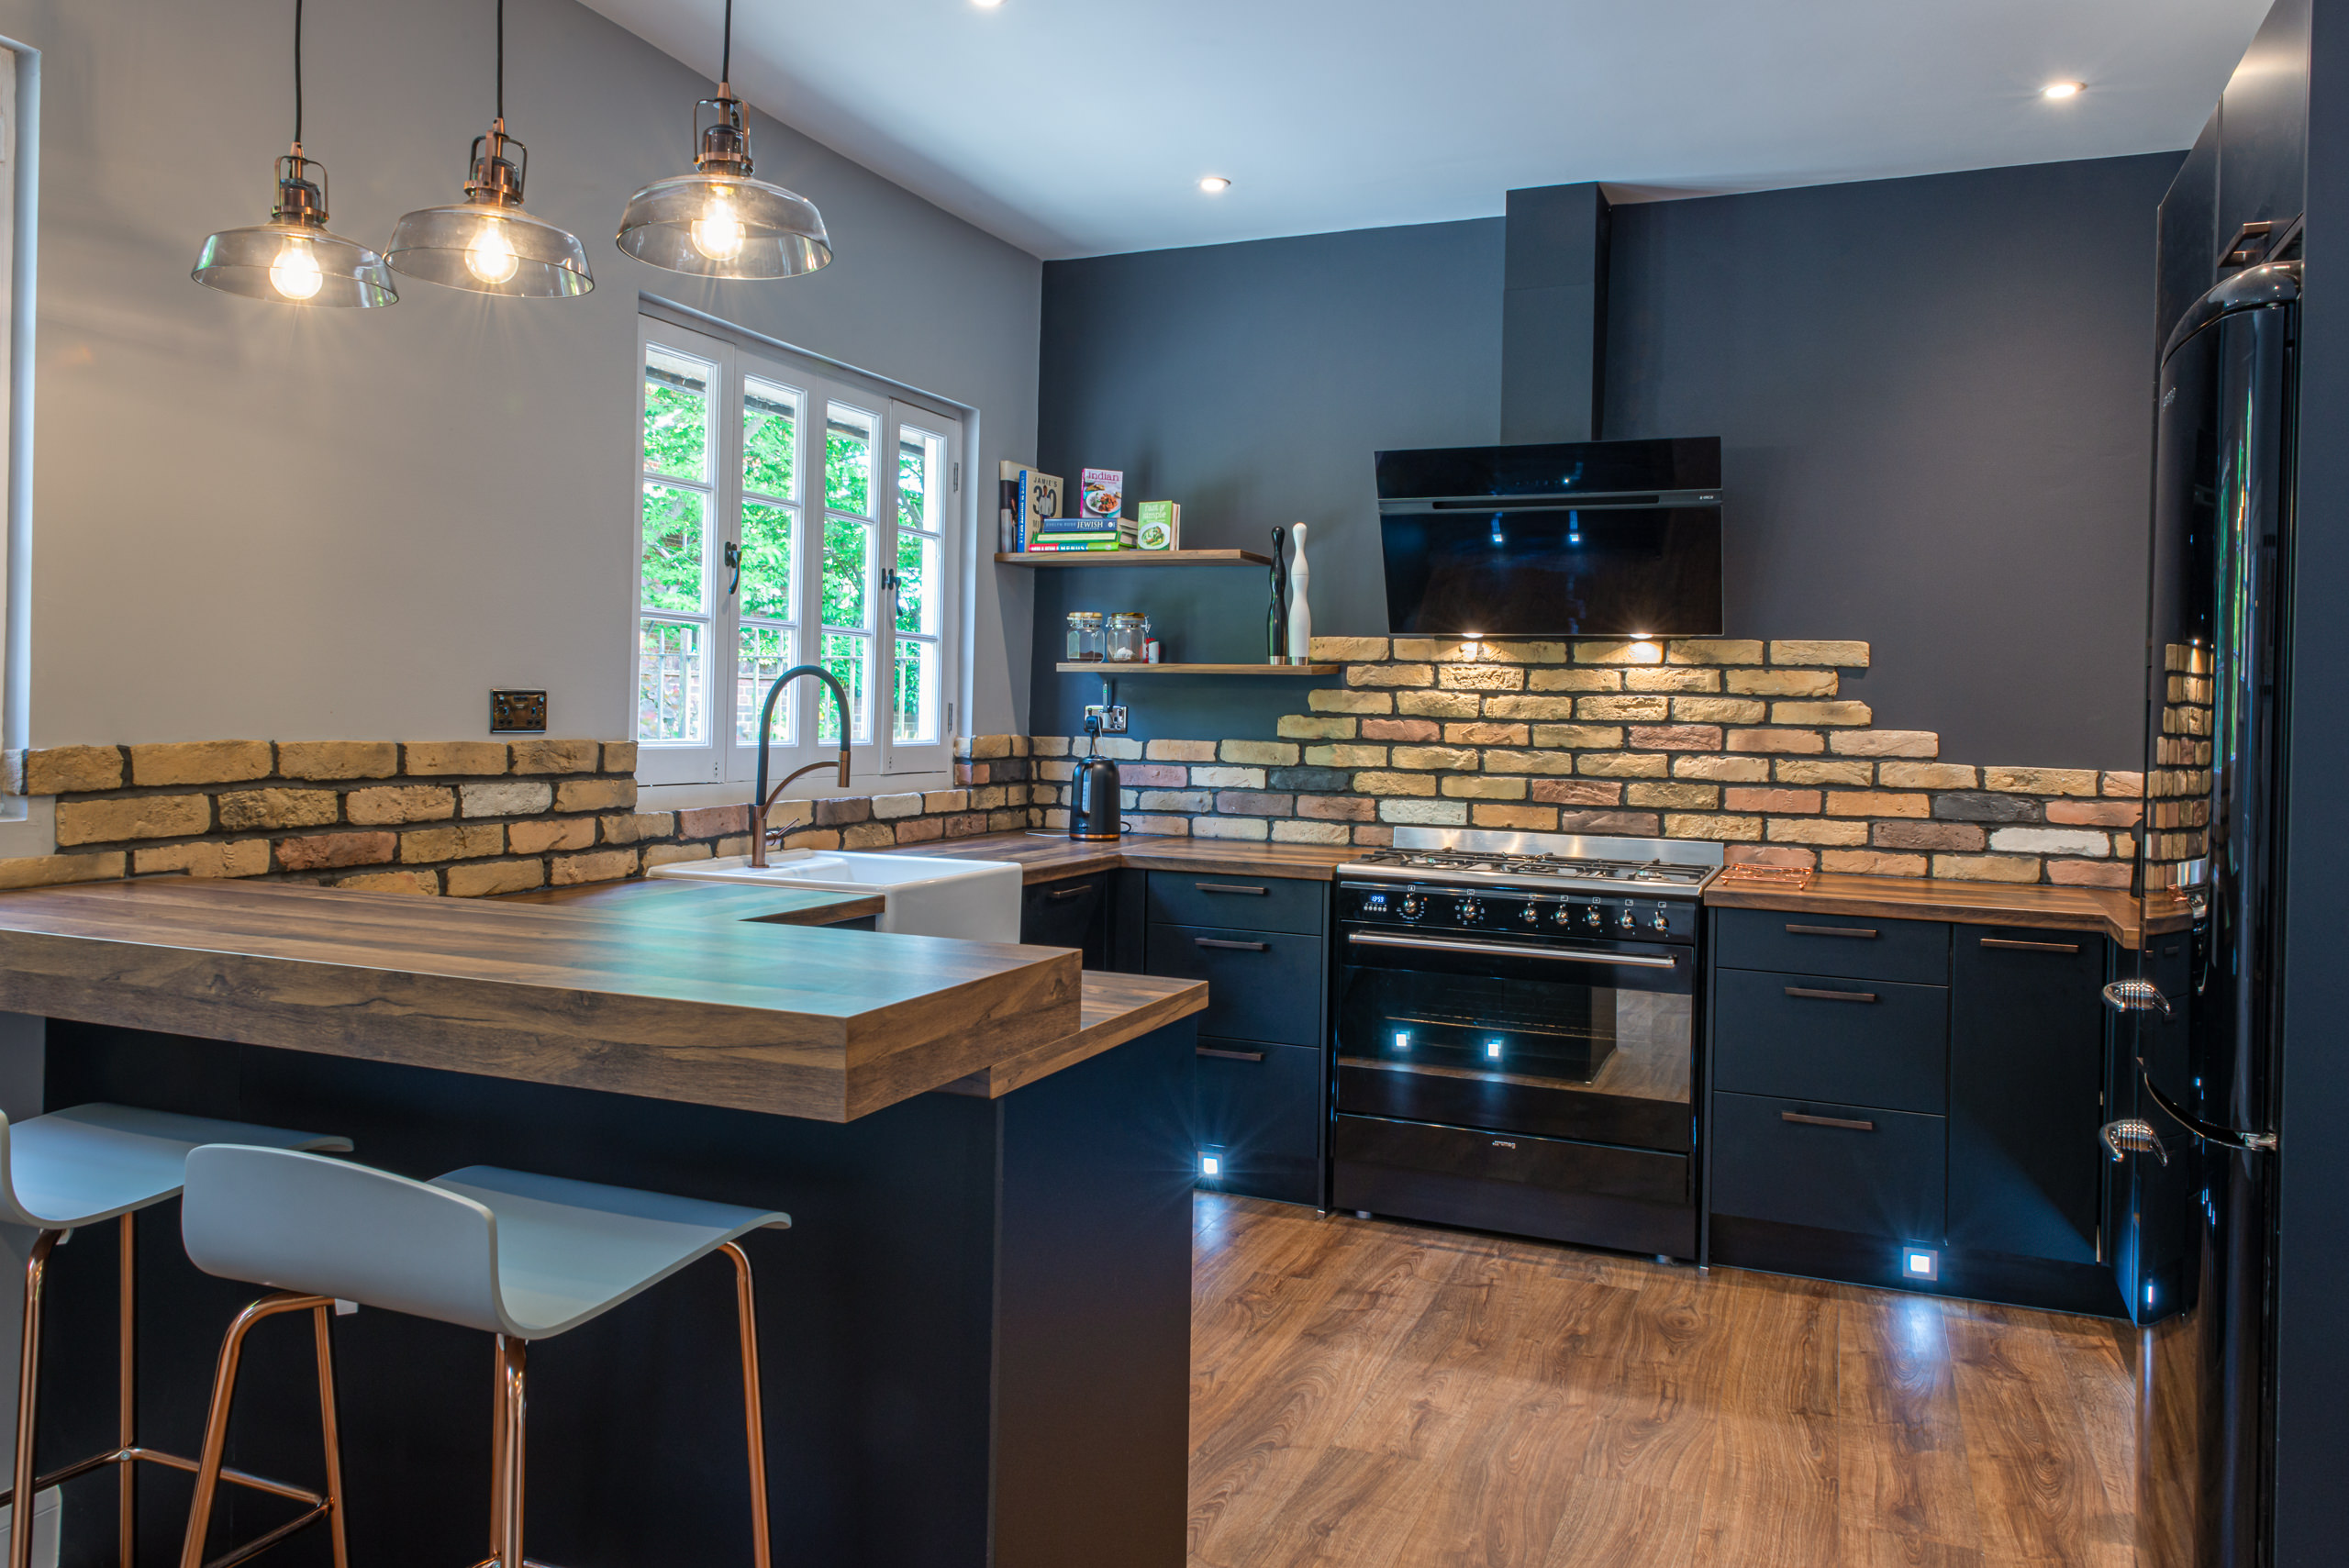 Premium German Kitchens - Hadley Common EN5